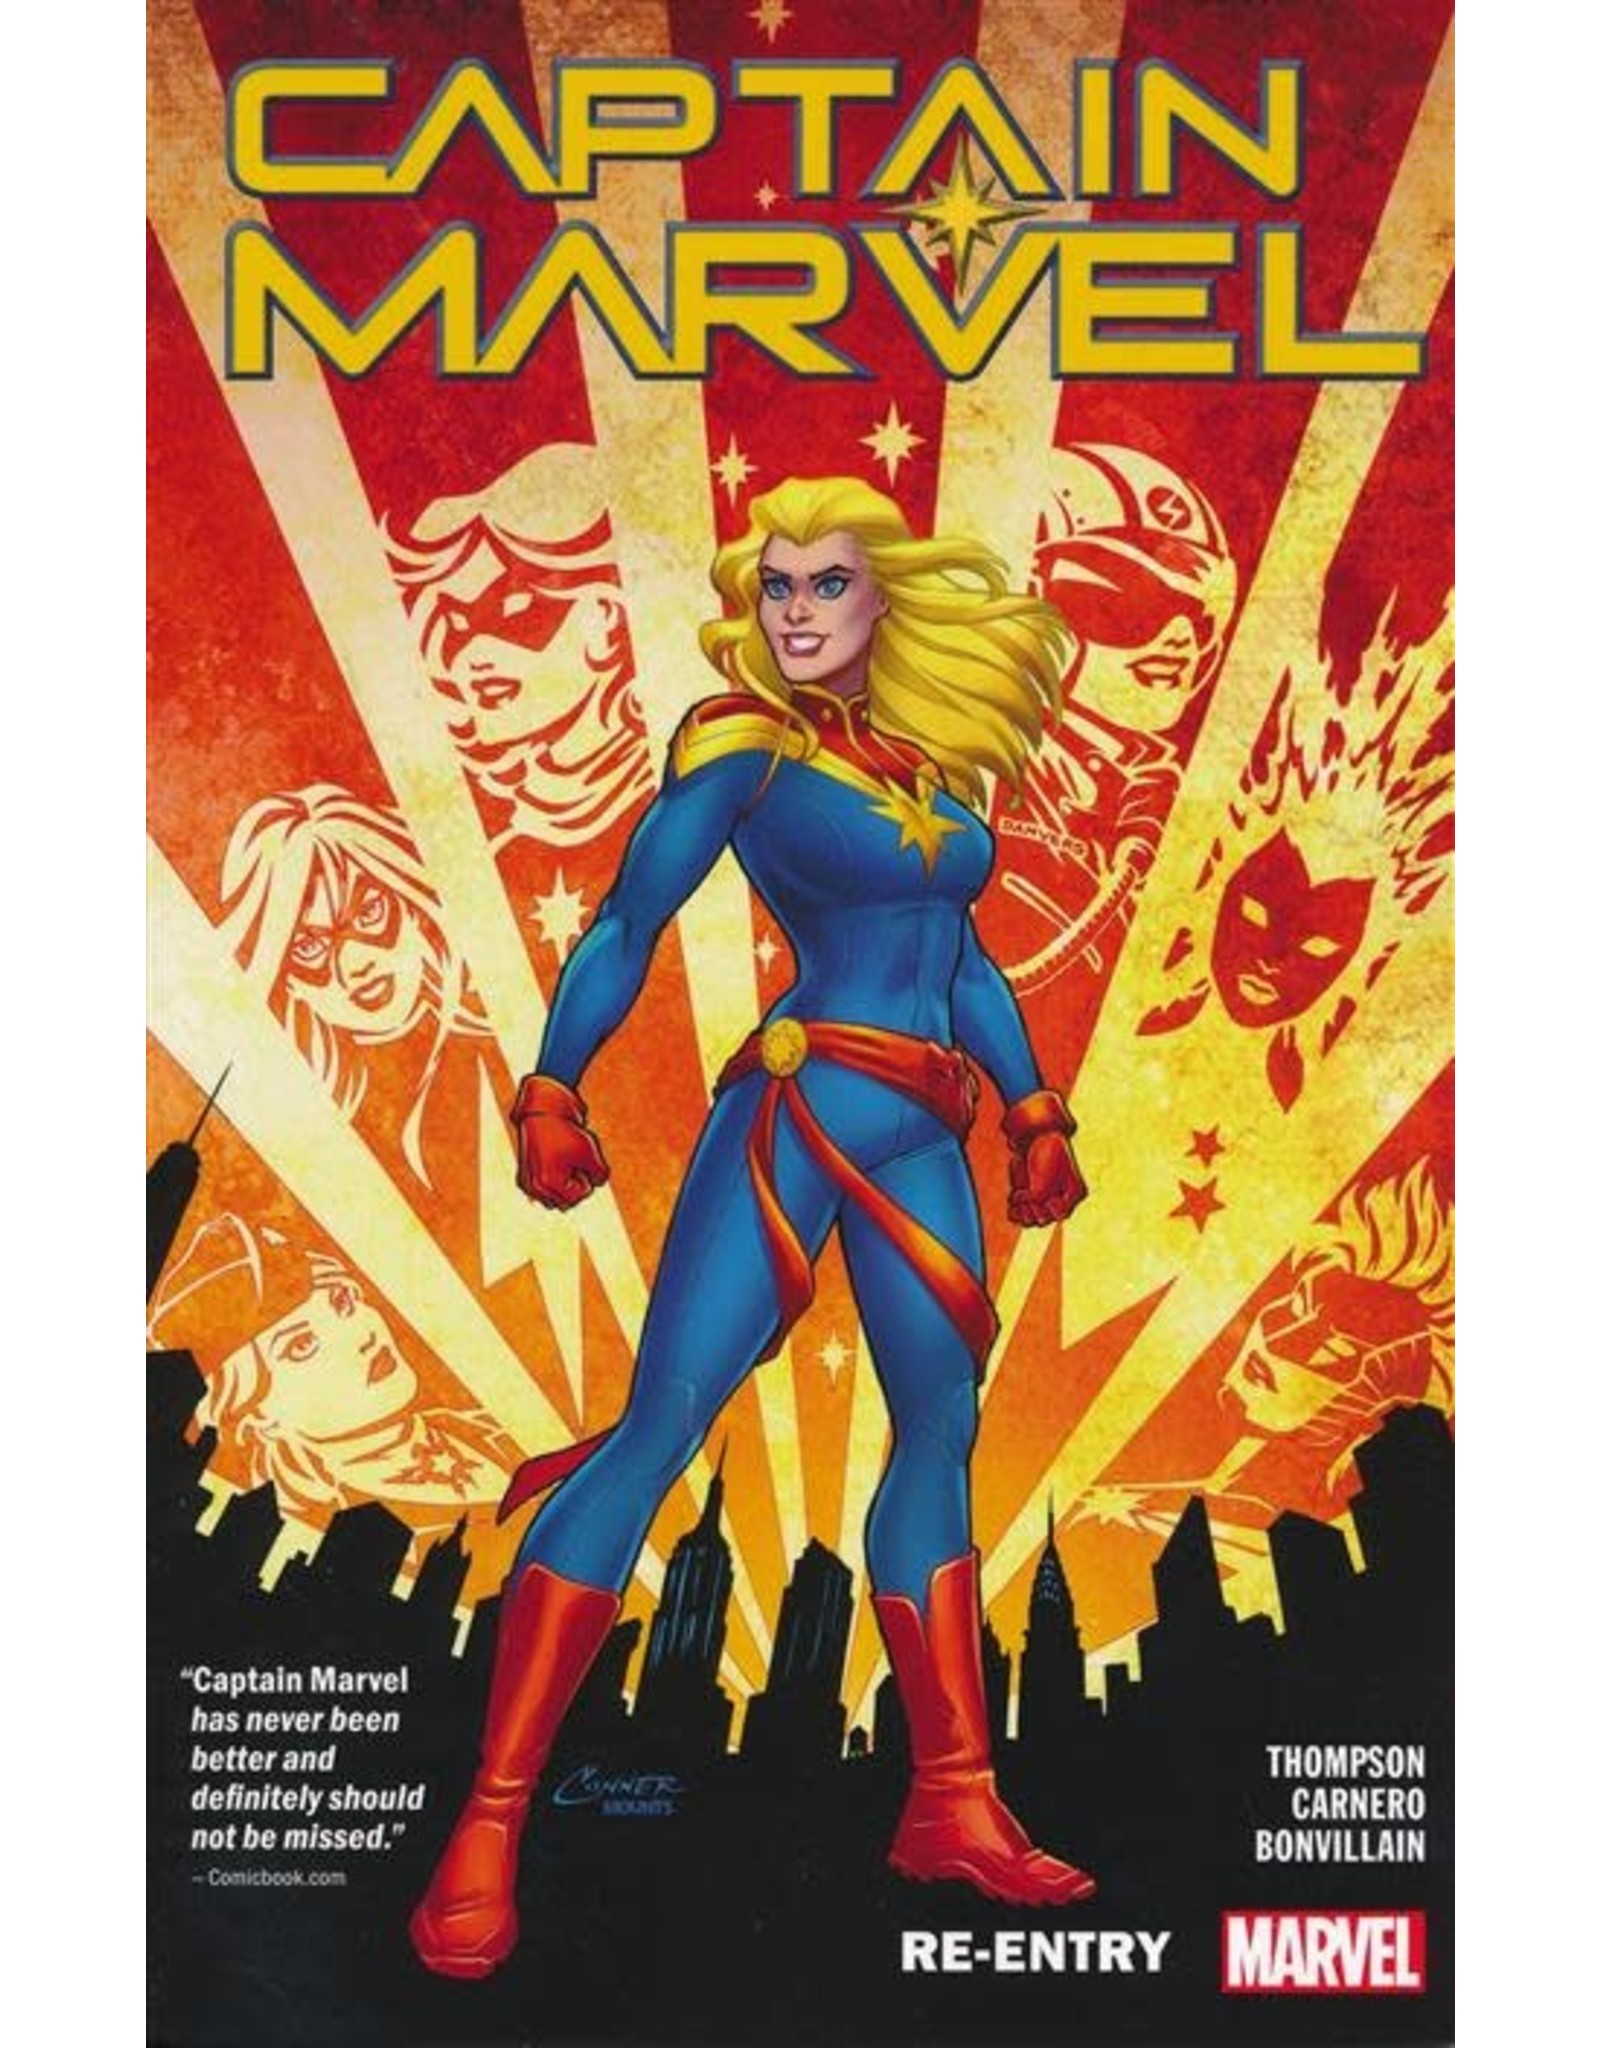 MARVEL COMICS CAPTAIN MARVEL TP VOL 01 RE-ENTRY